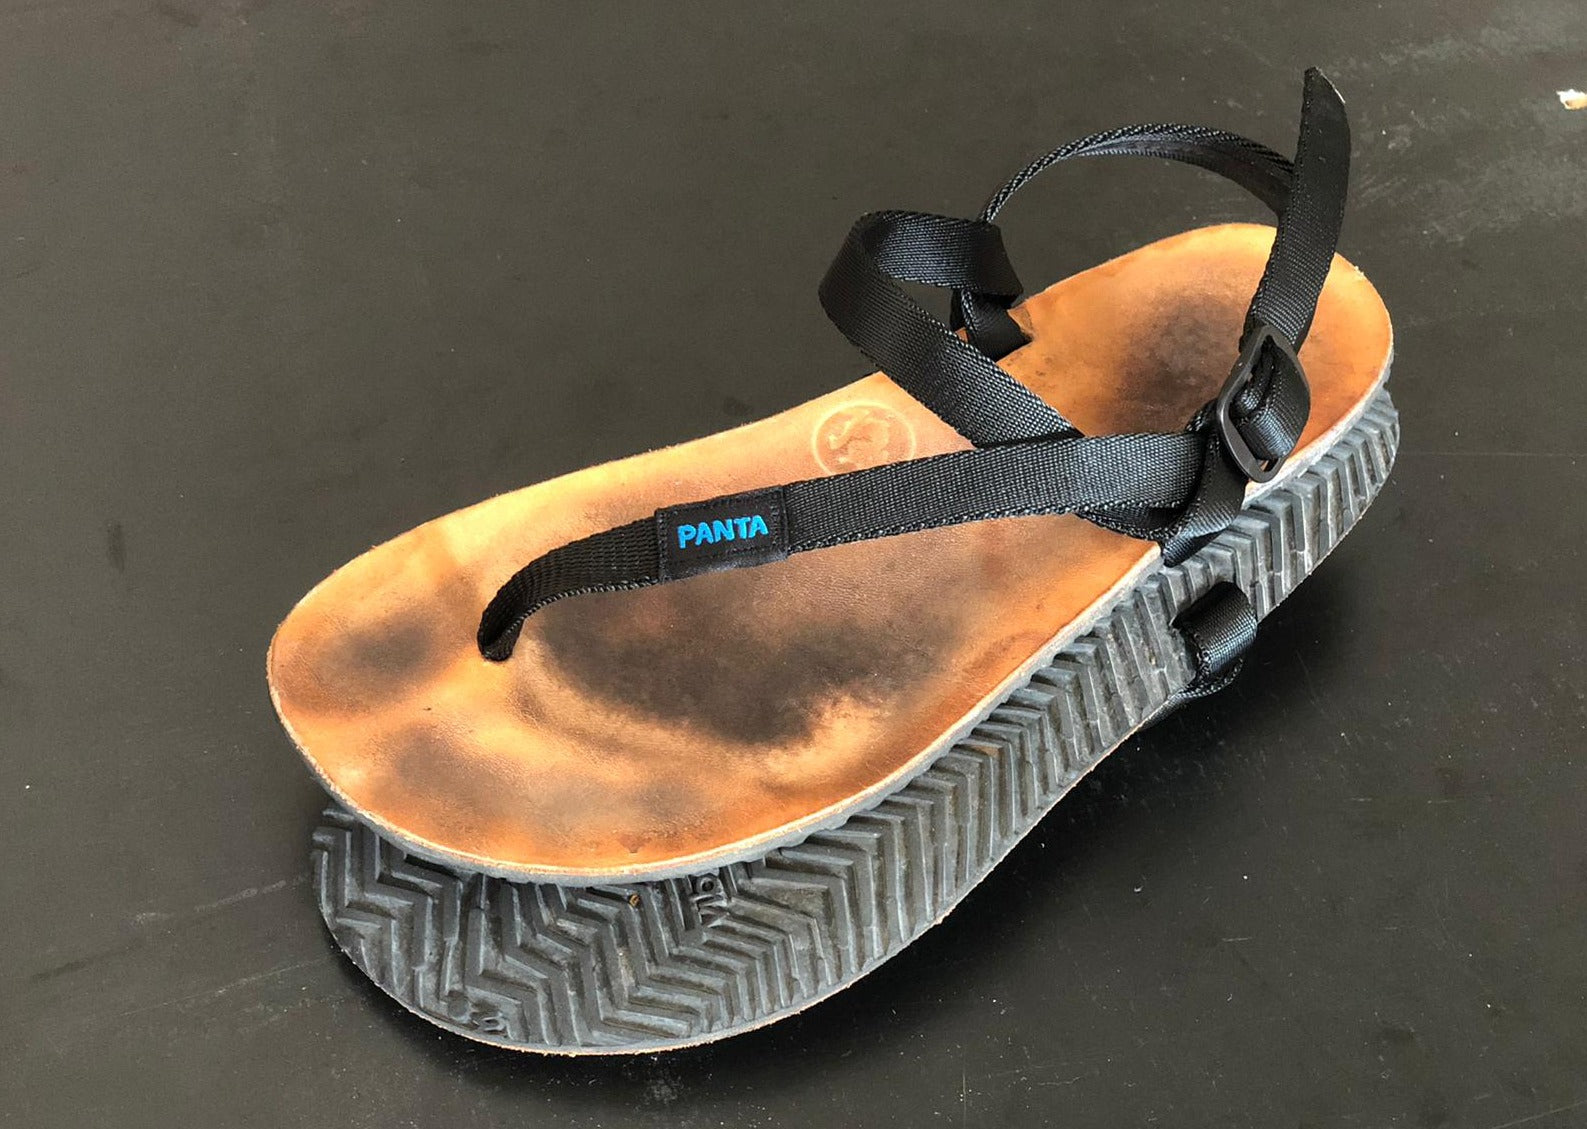 Replacement straps on a used pair of sandals